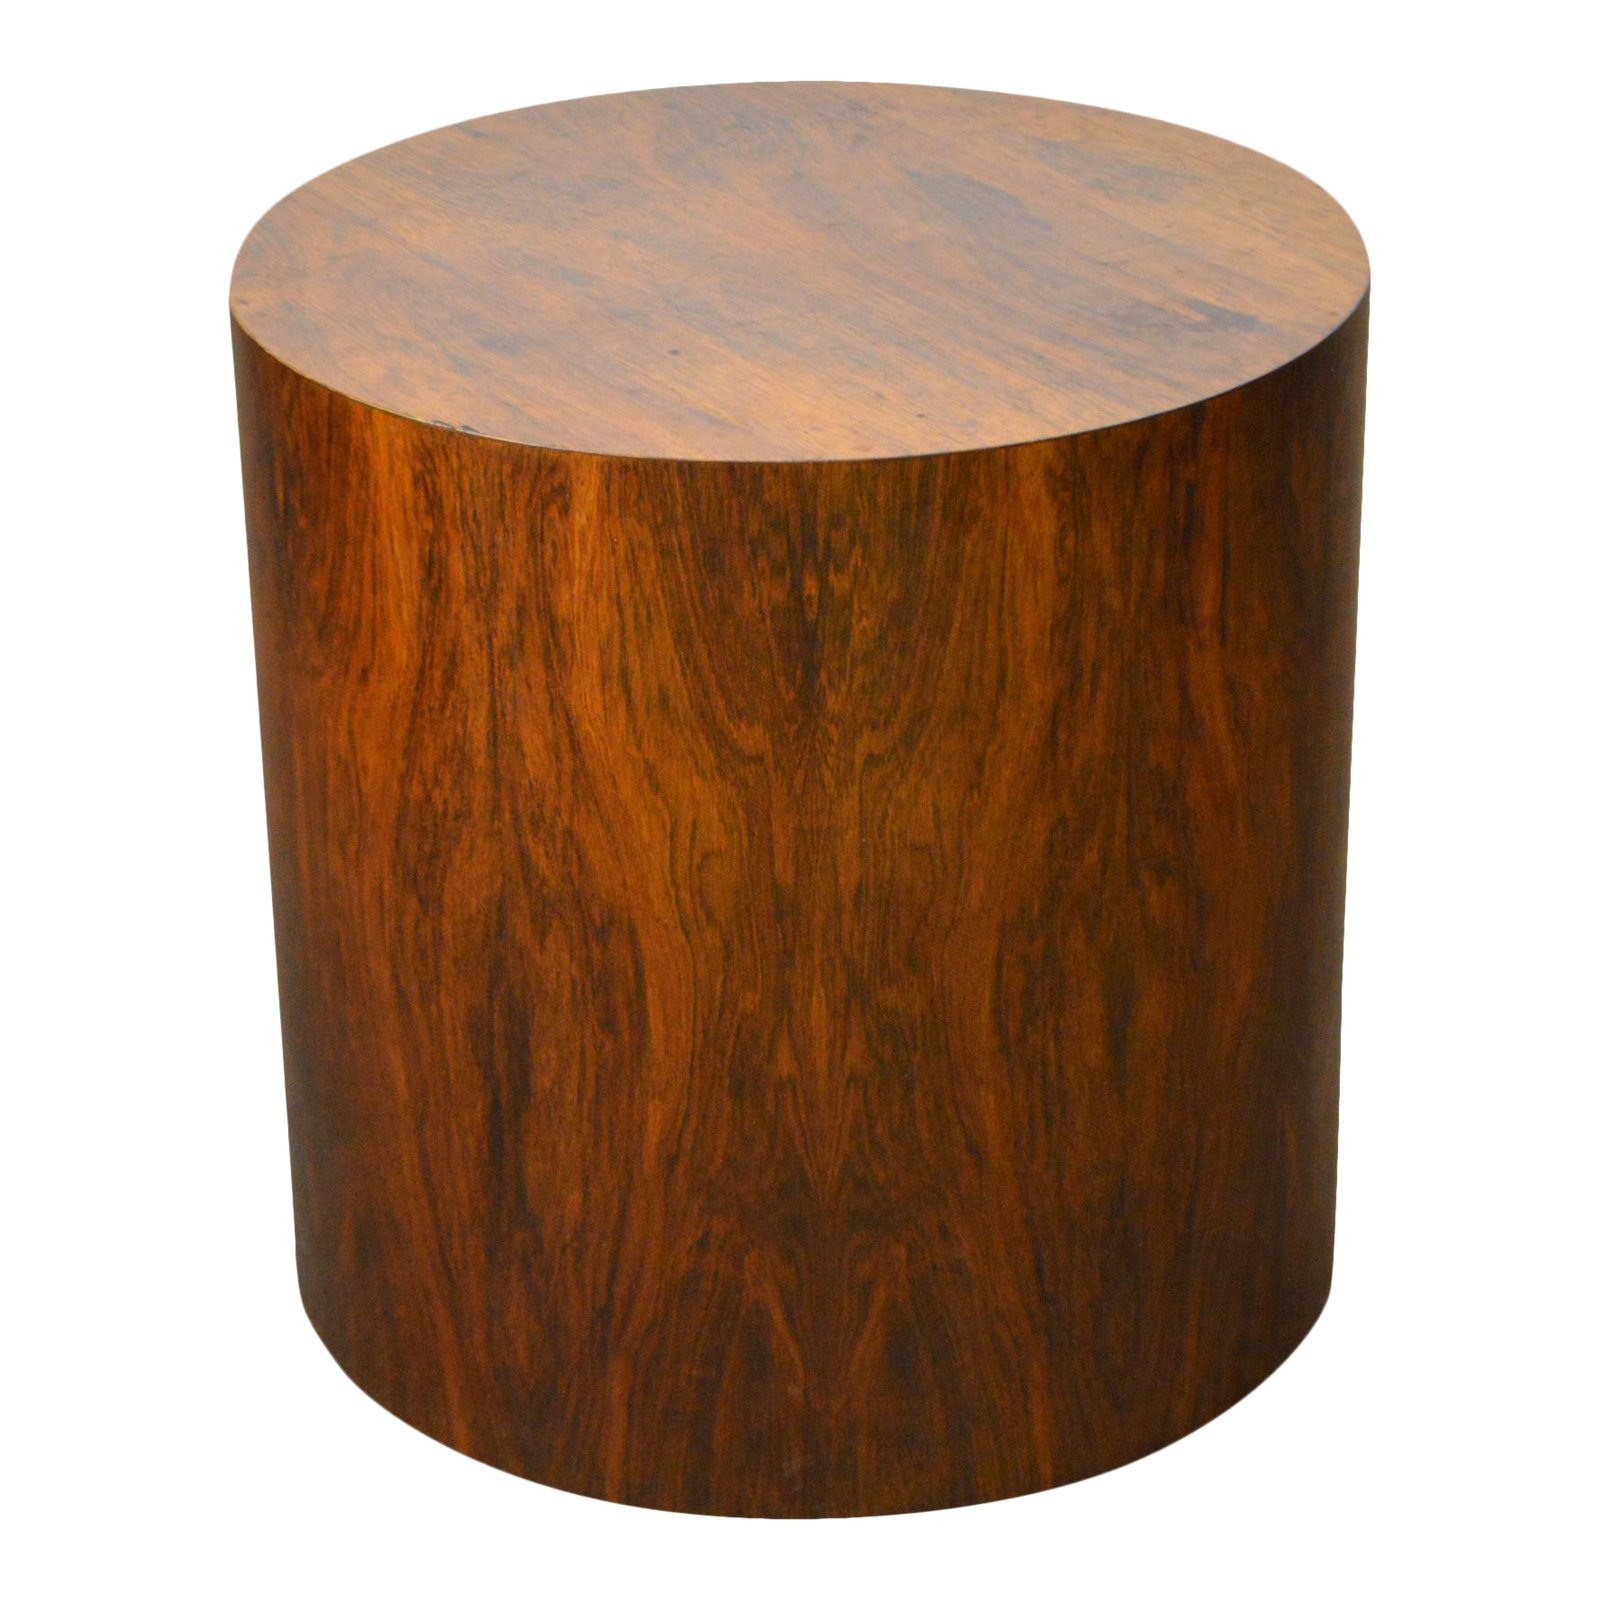 milo baughman mid century modern round rosewood cylinder drum side table accent chairish black lacquer marble top console home lamps quality build your own end metal garden